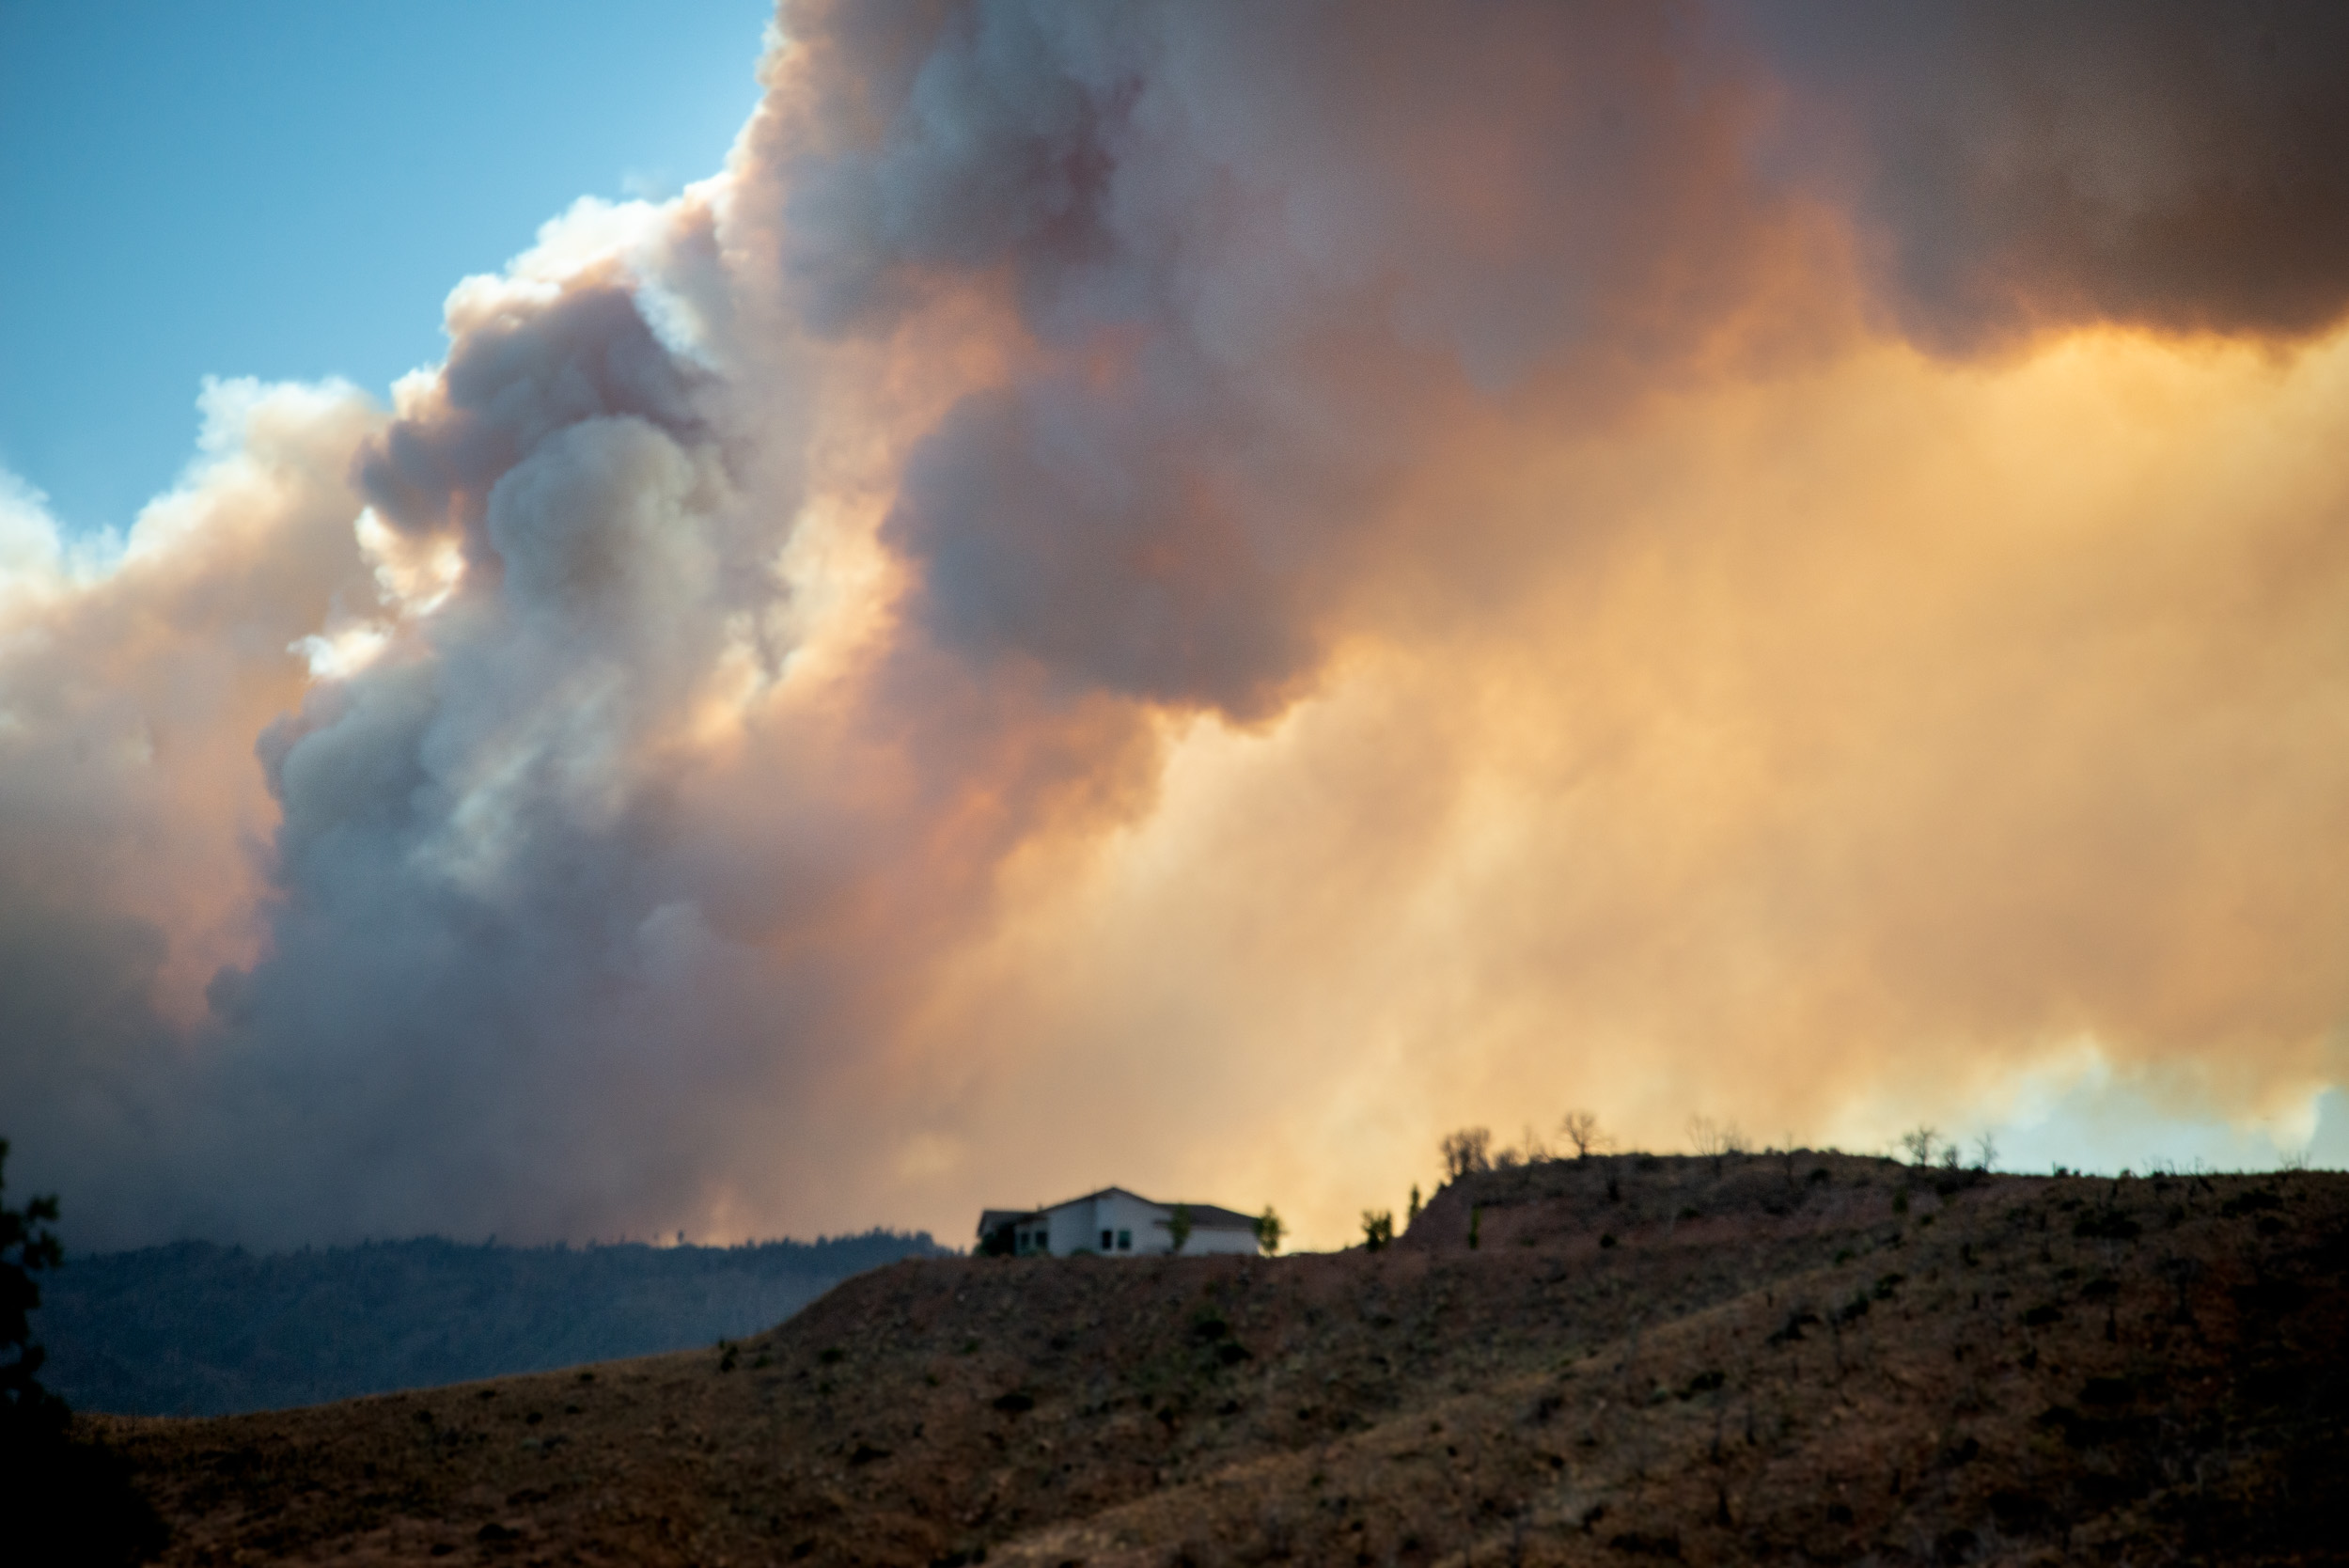 Fire Near House above Rest Area Near Kanarraville, Utah © Robert Welkie 2018